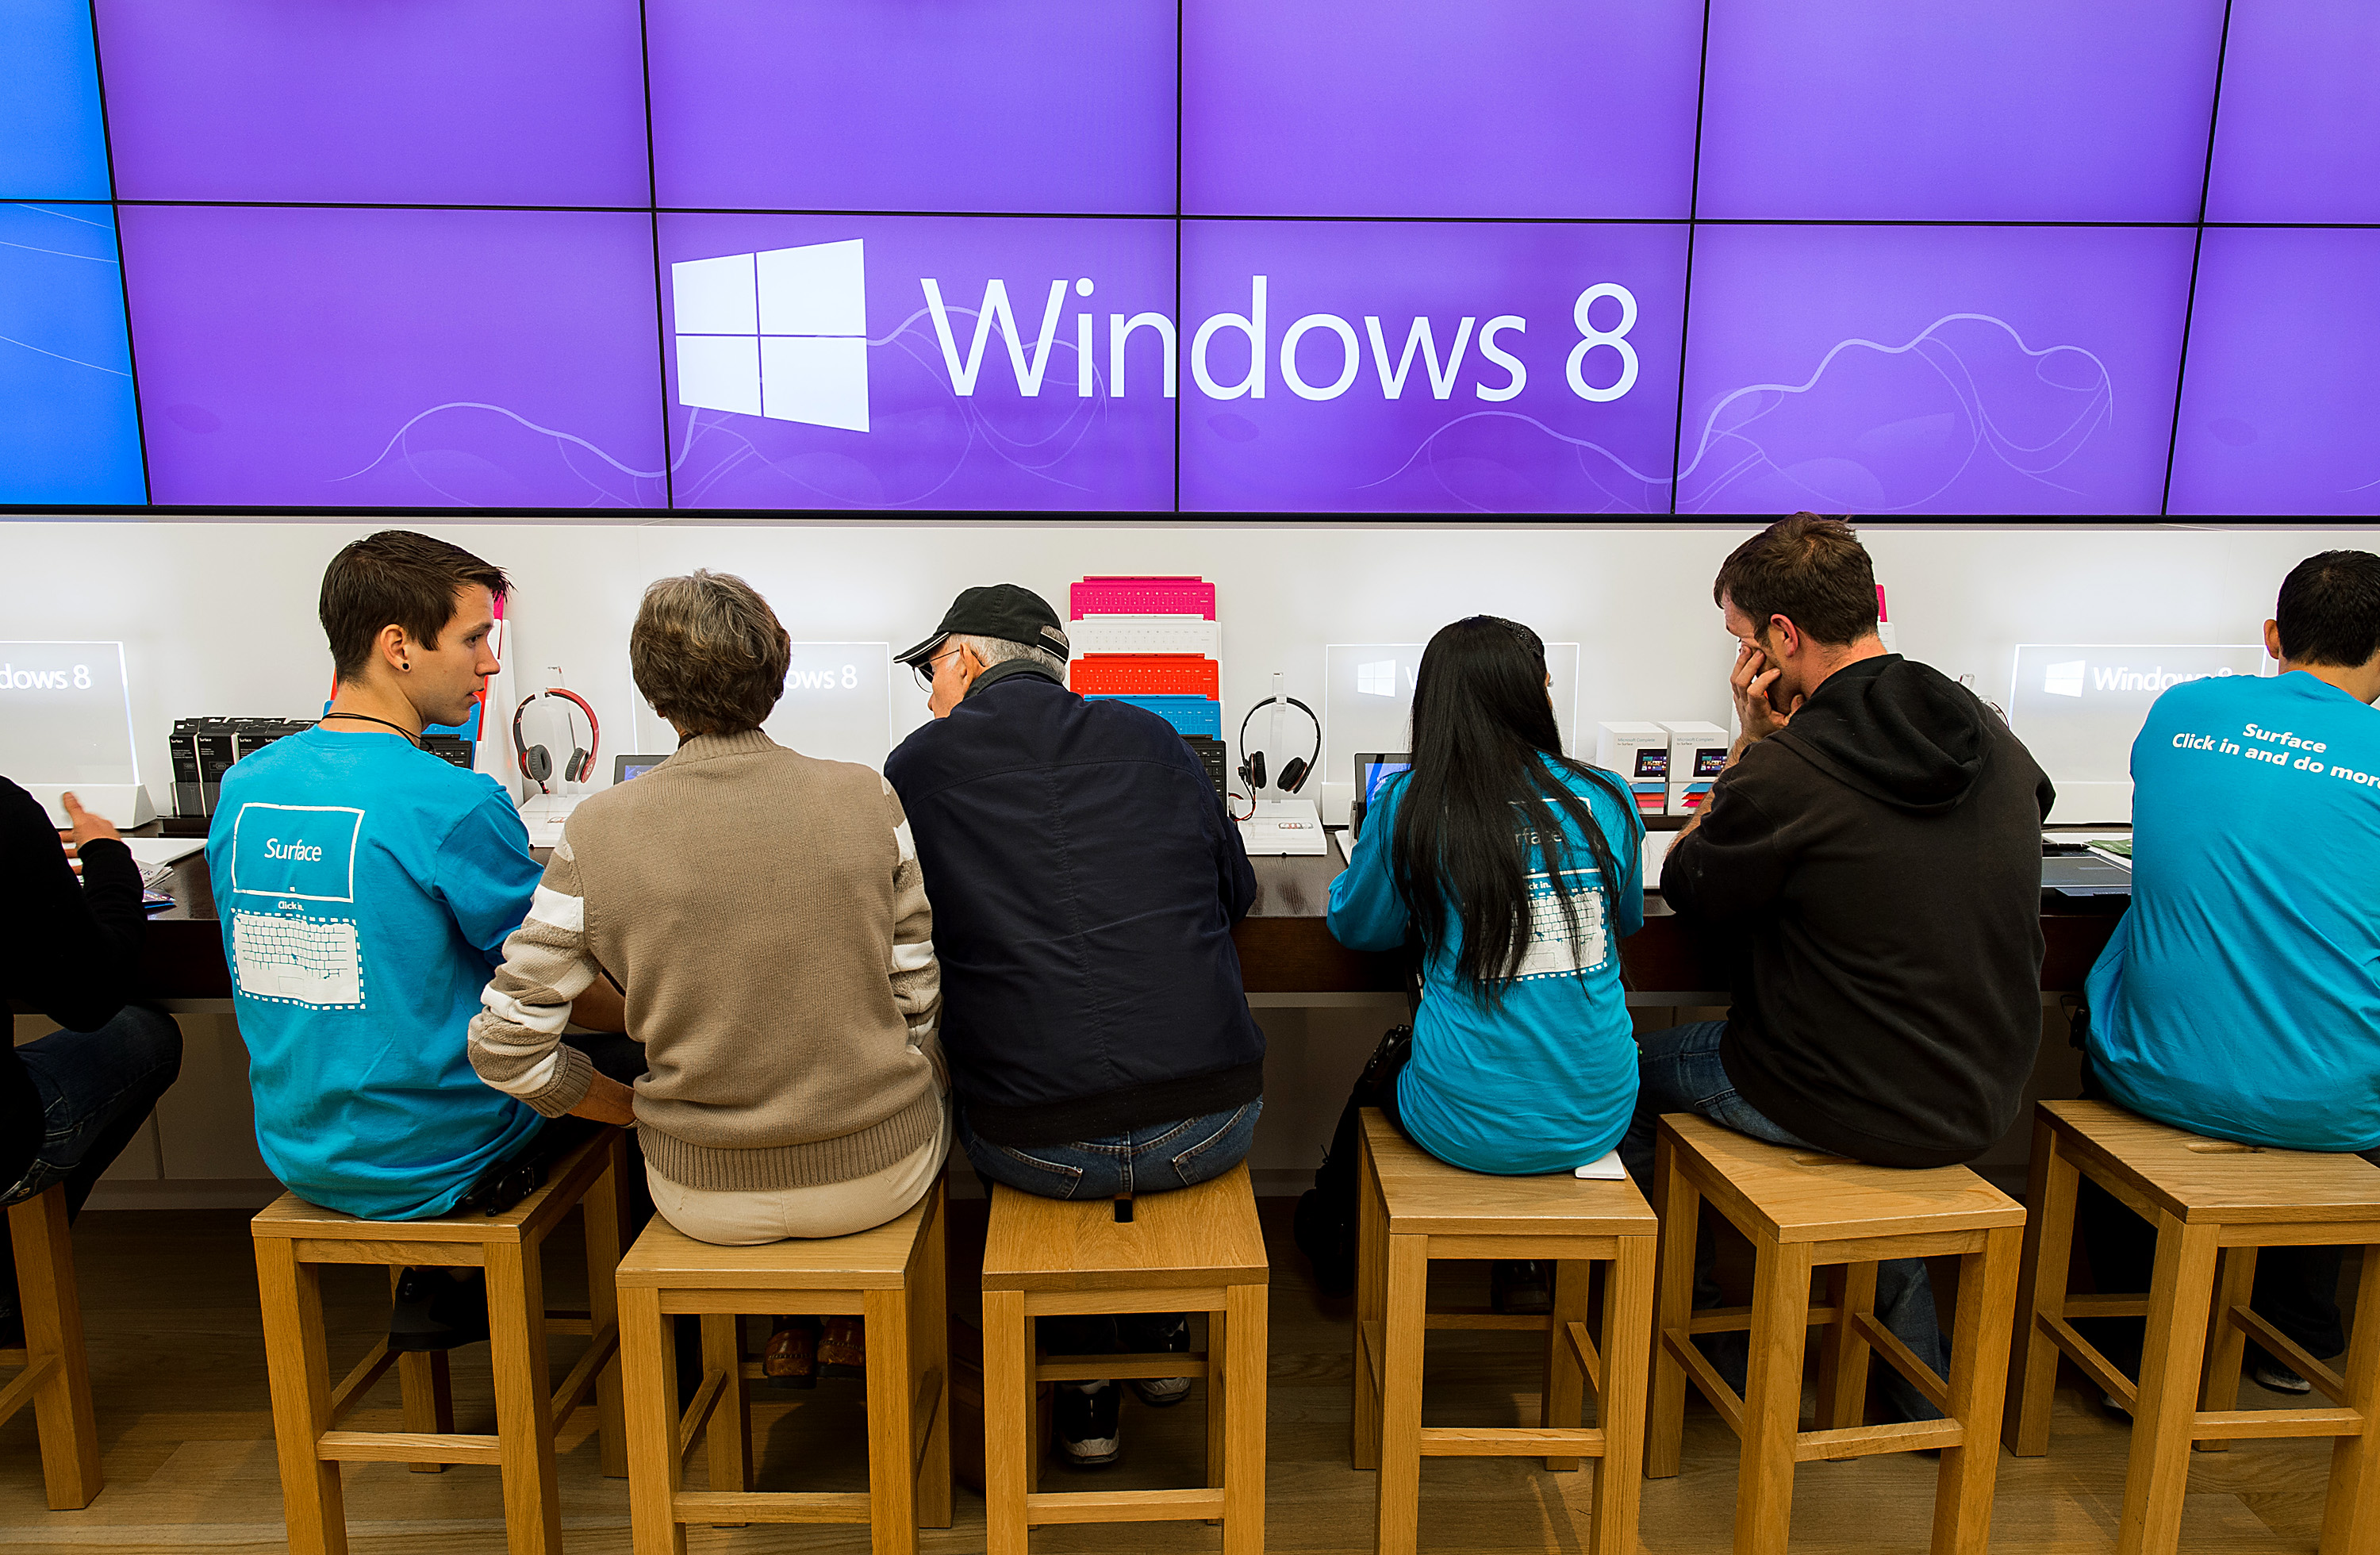 Employees assist customers at the opening of a Microsoft Corp. store in Bellevue, Washington, U.S., on Friday, Oct. 26, 2012.